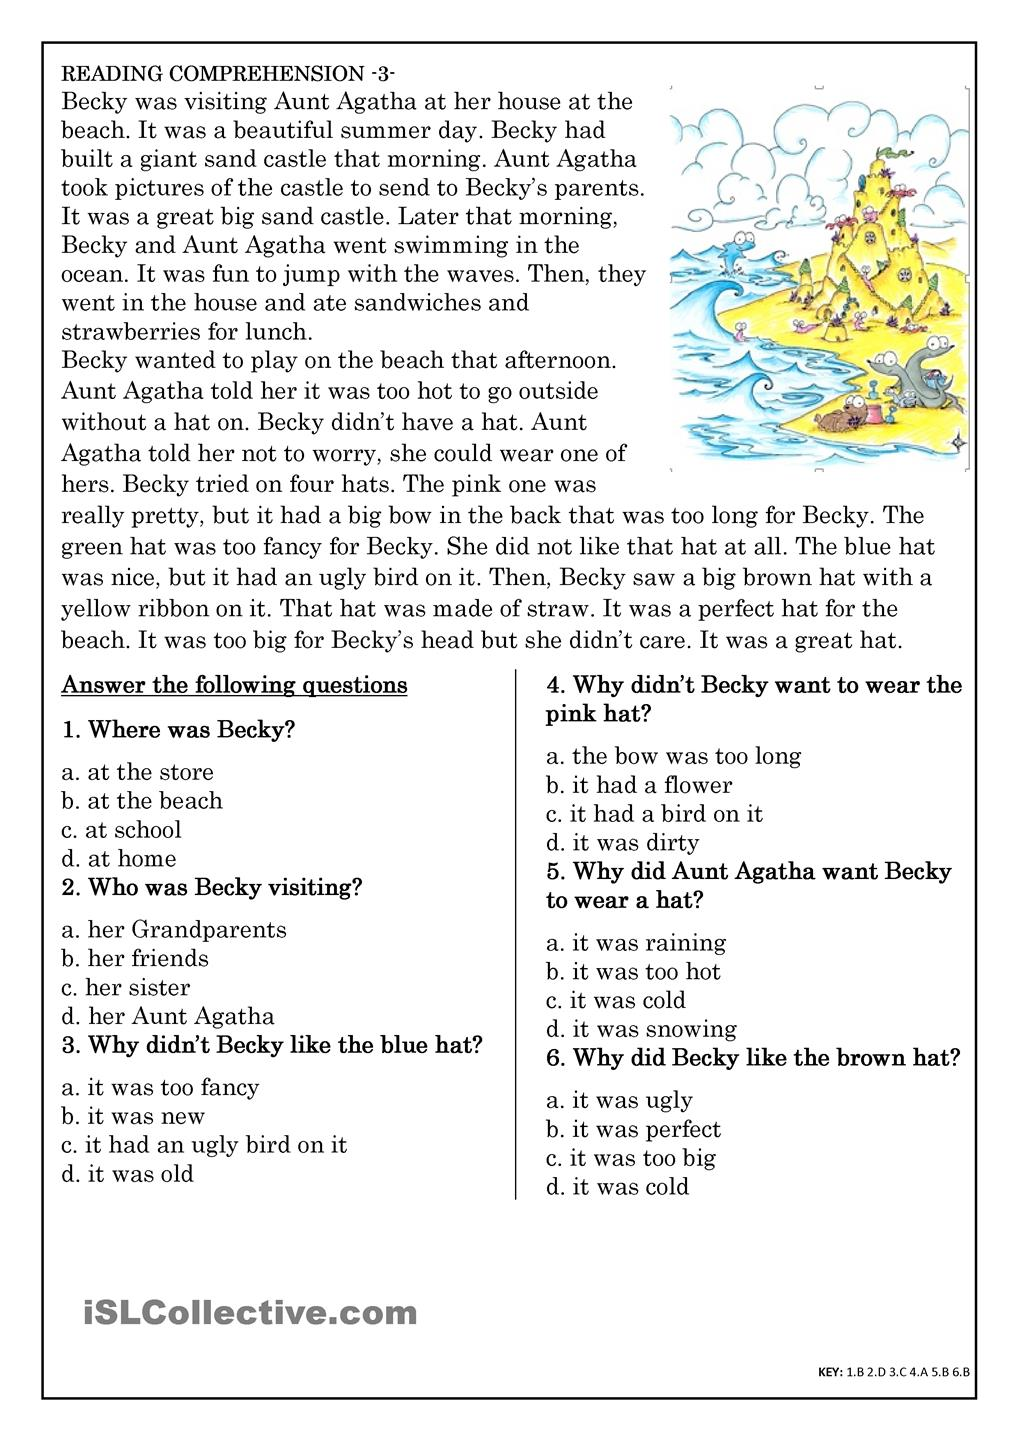 Reading Comprehension For Beginner And Elementary Students 3